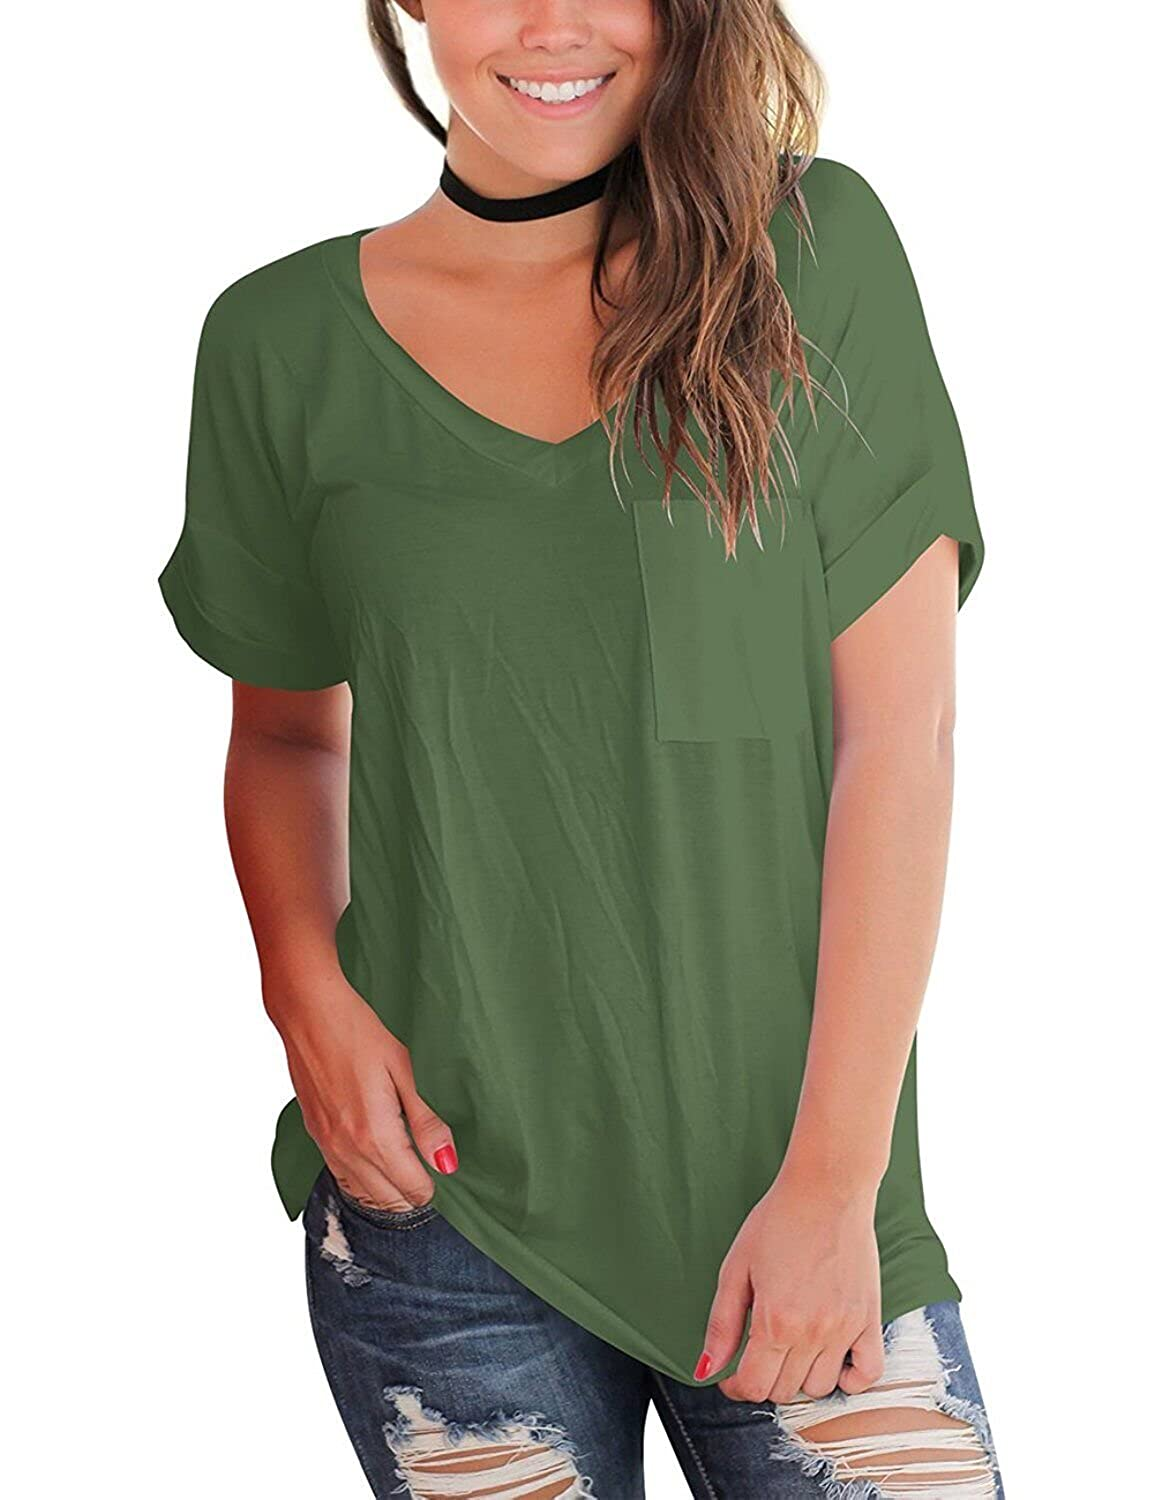 39fe12f710d960 Women s Short Sleeve V Neck T Shirts Casual Loose Plain Basic Tee Tops  Blouse Pocket